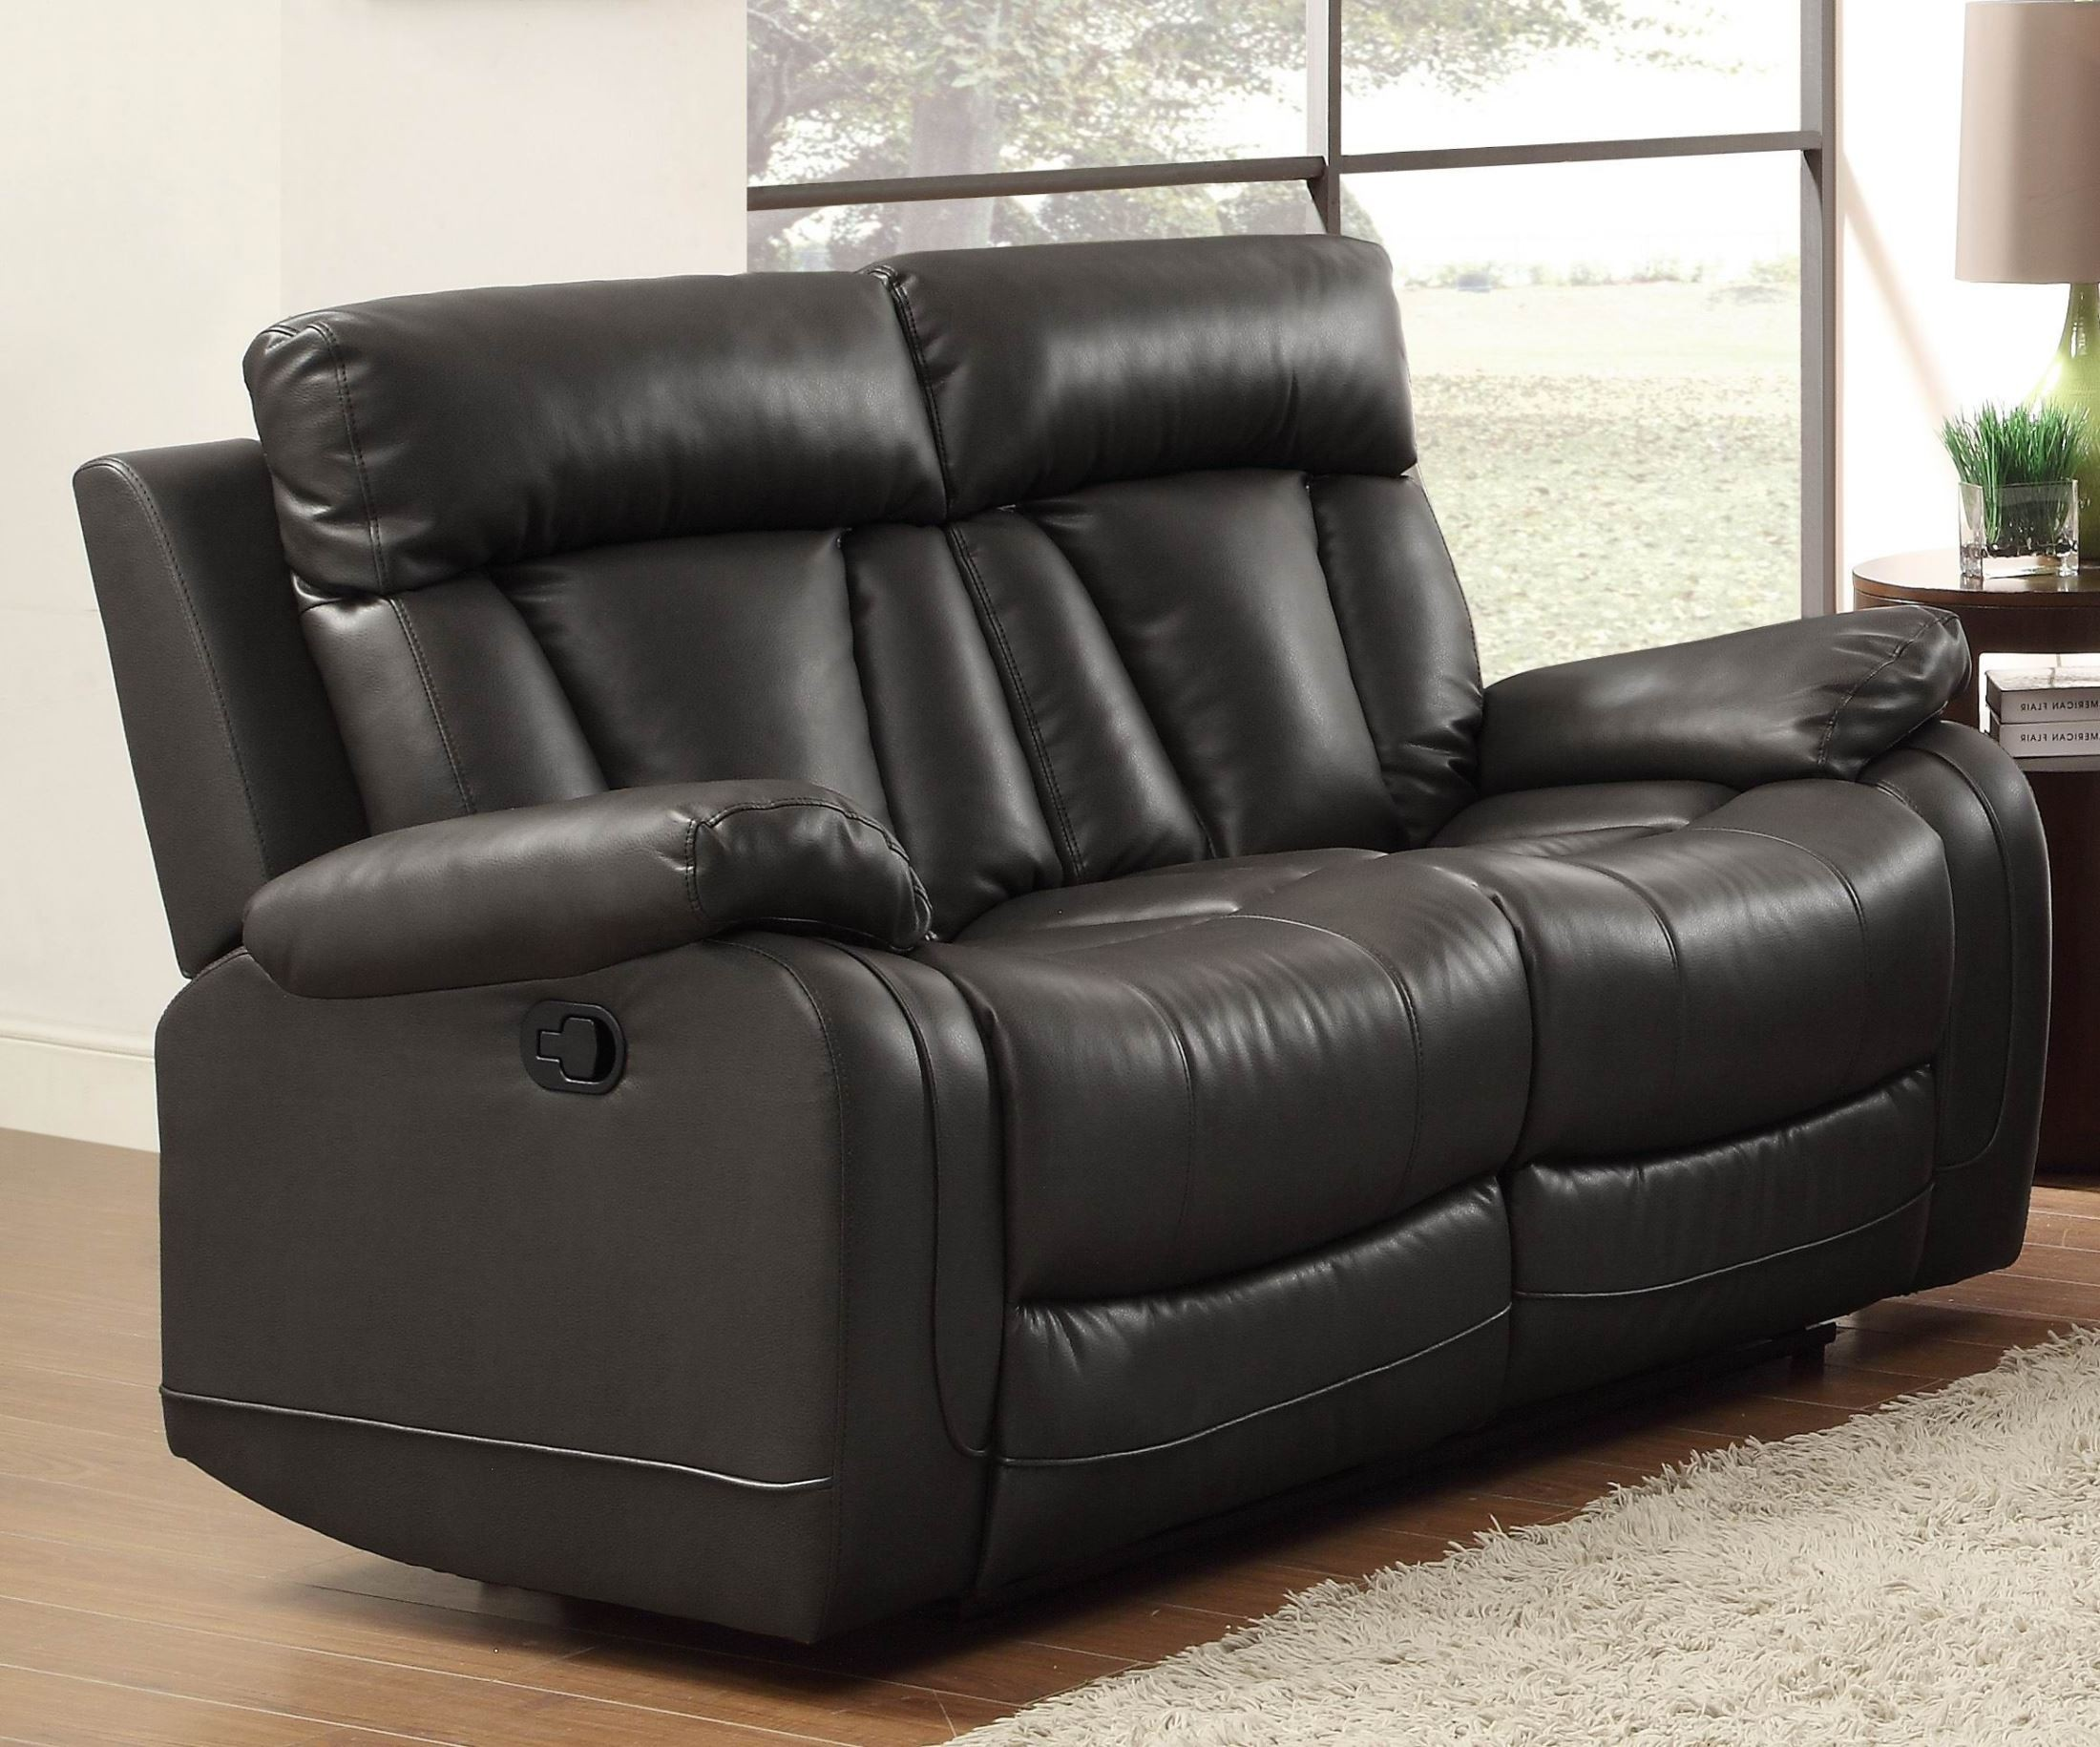 Ackerman Black Double Reclining Loveseat From Homelegance 8500blk 2 Coleman Furniture